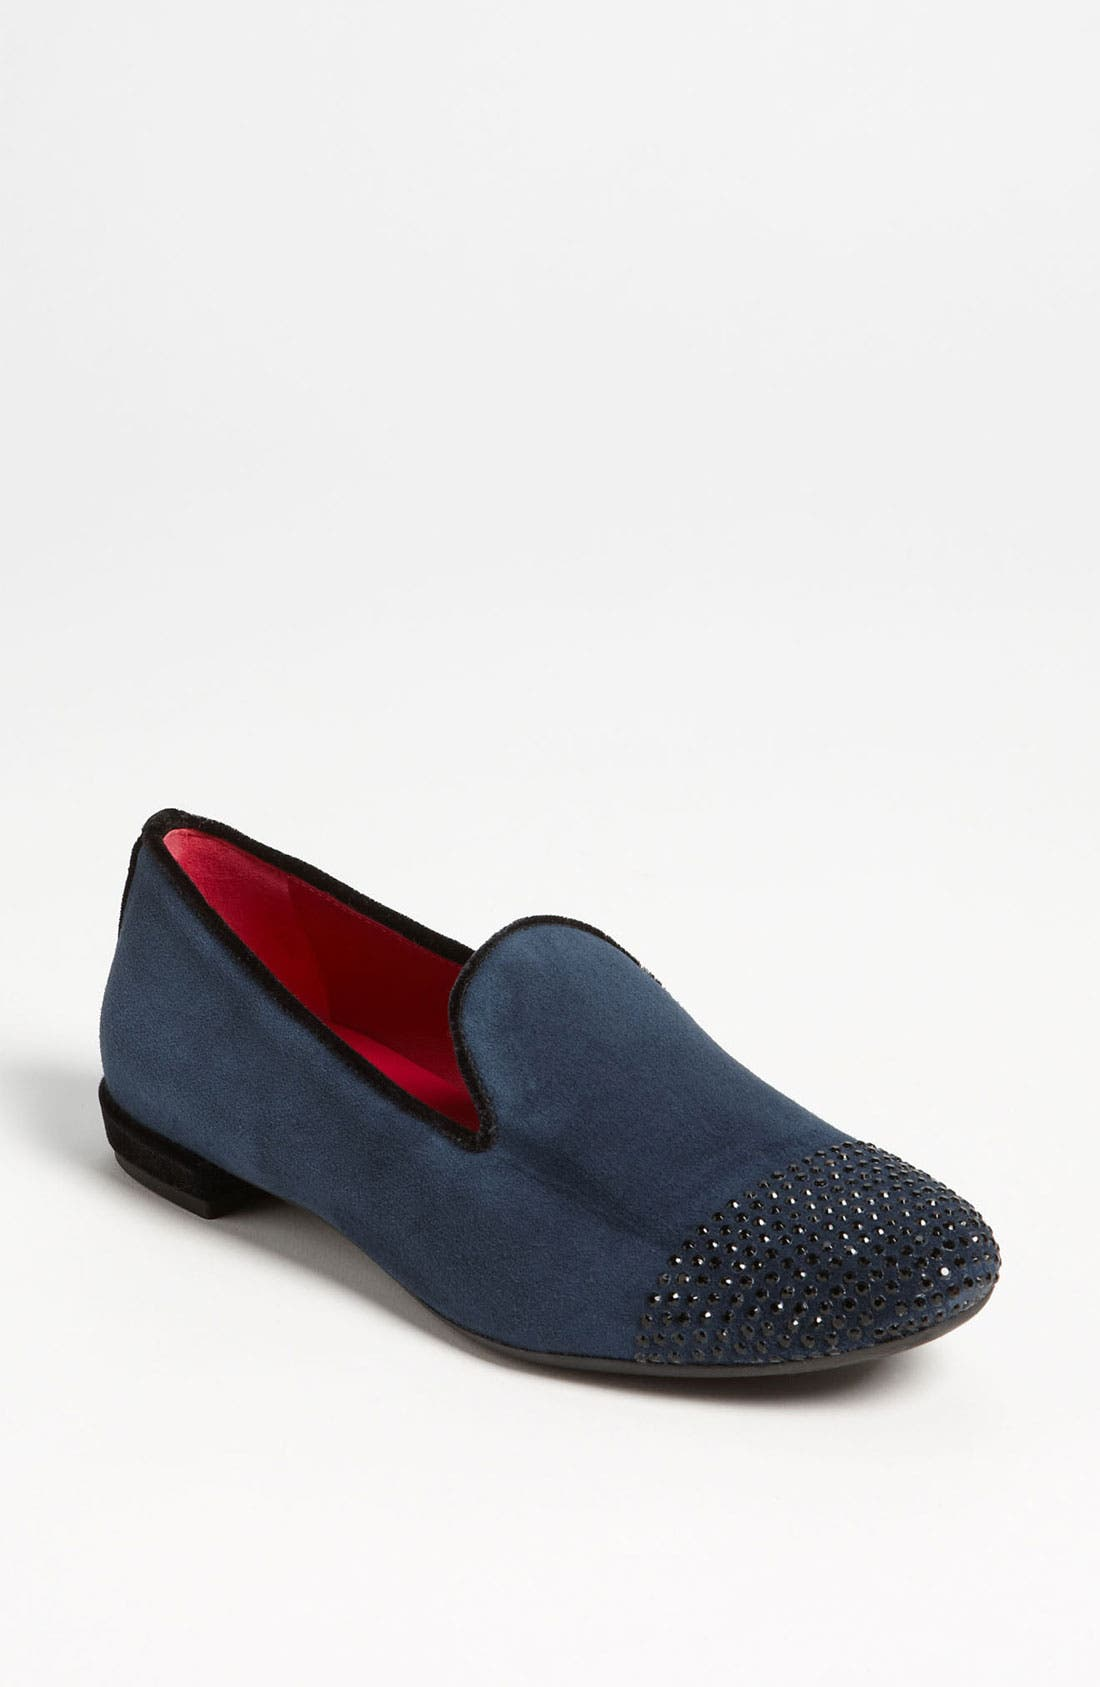 Main Image - Alberto Gozzi Slip-On